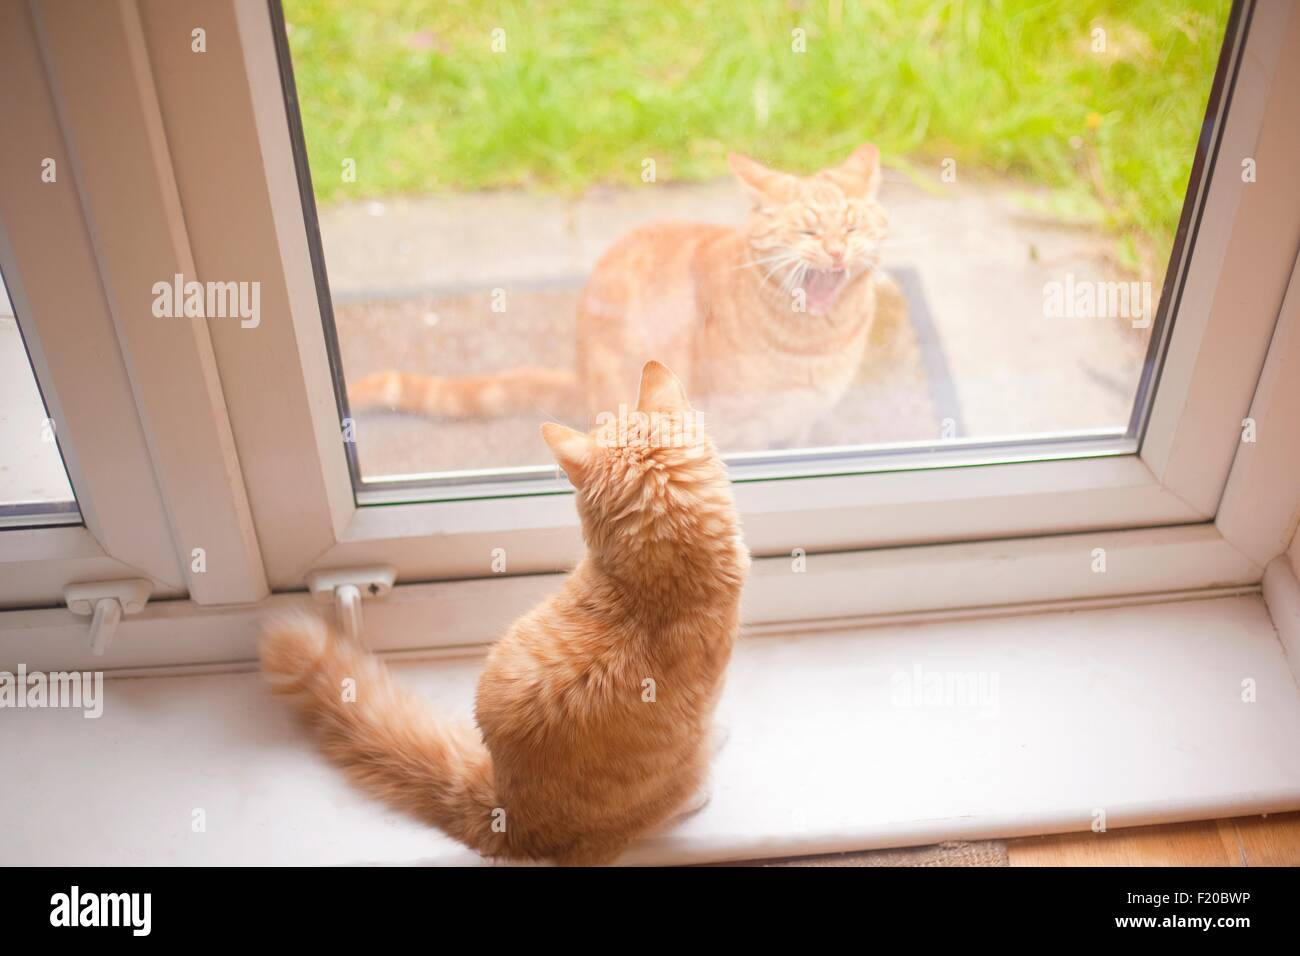 Ginger tom cat looking down from windowsill at another ginger tom cat in garden - Stock Image